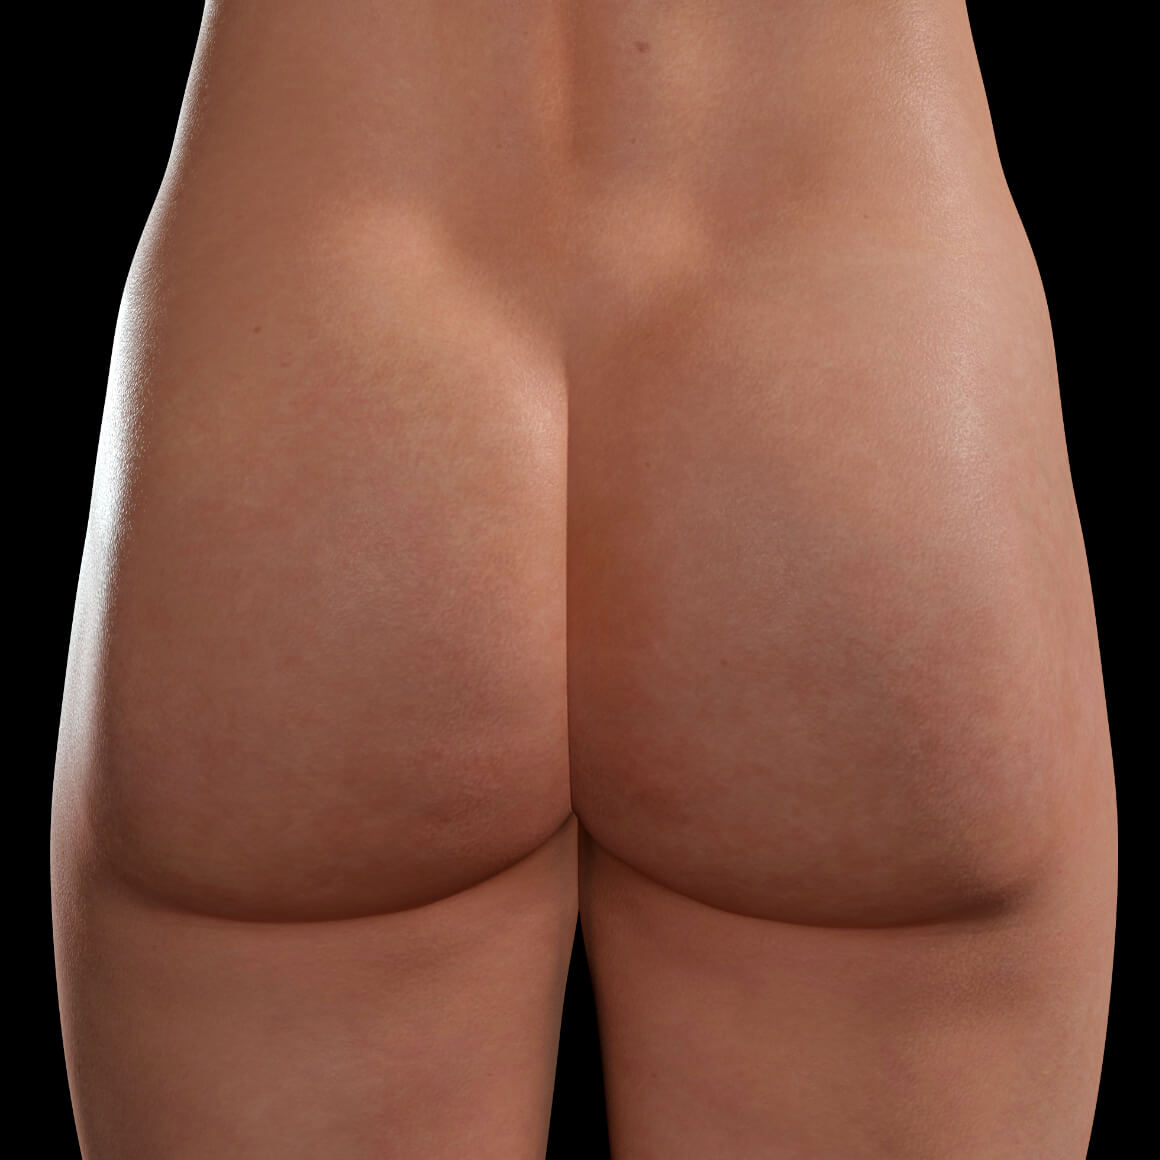 Buttocks of a female patient from Clinique Chloé after a Venus Legacy cellulite treatment